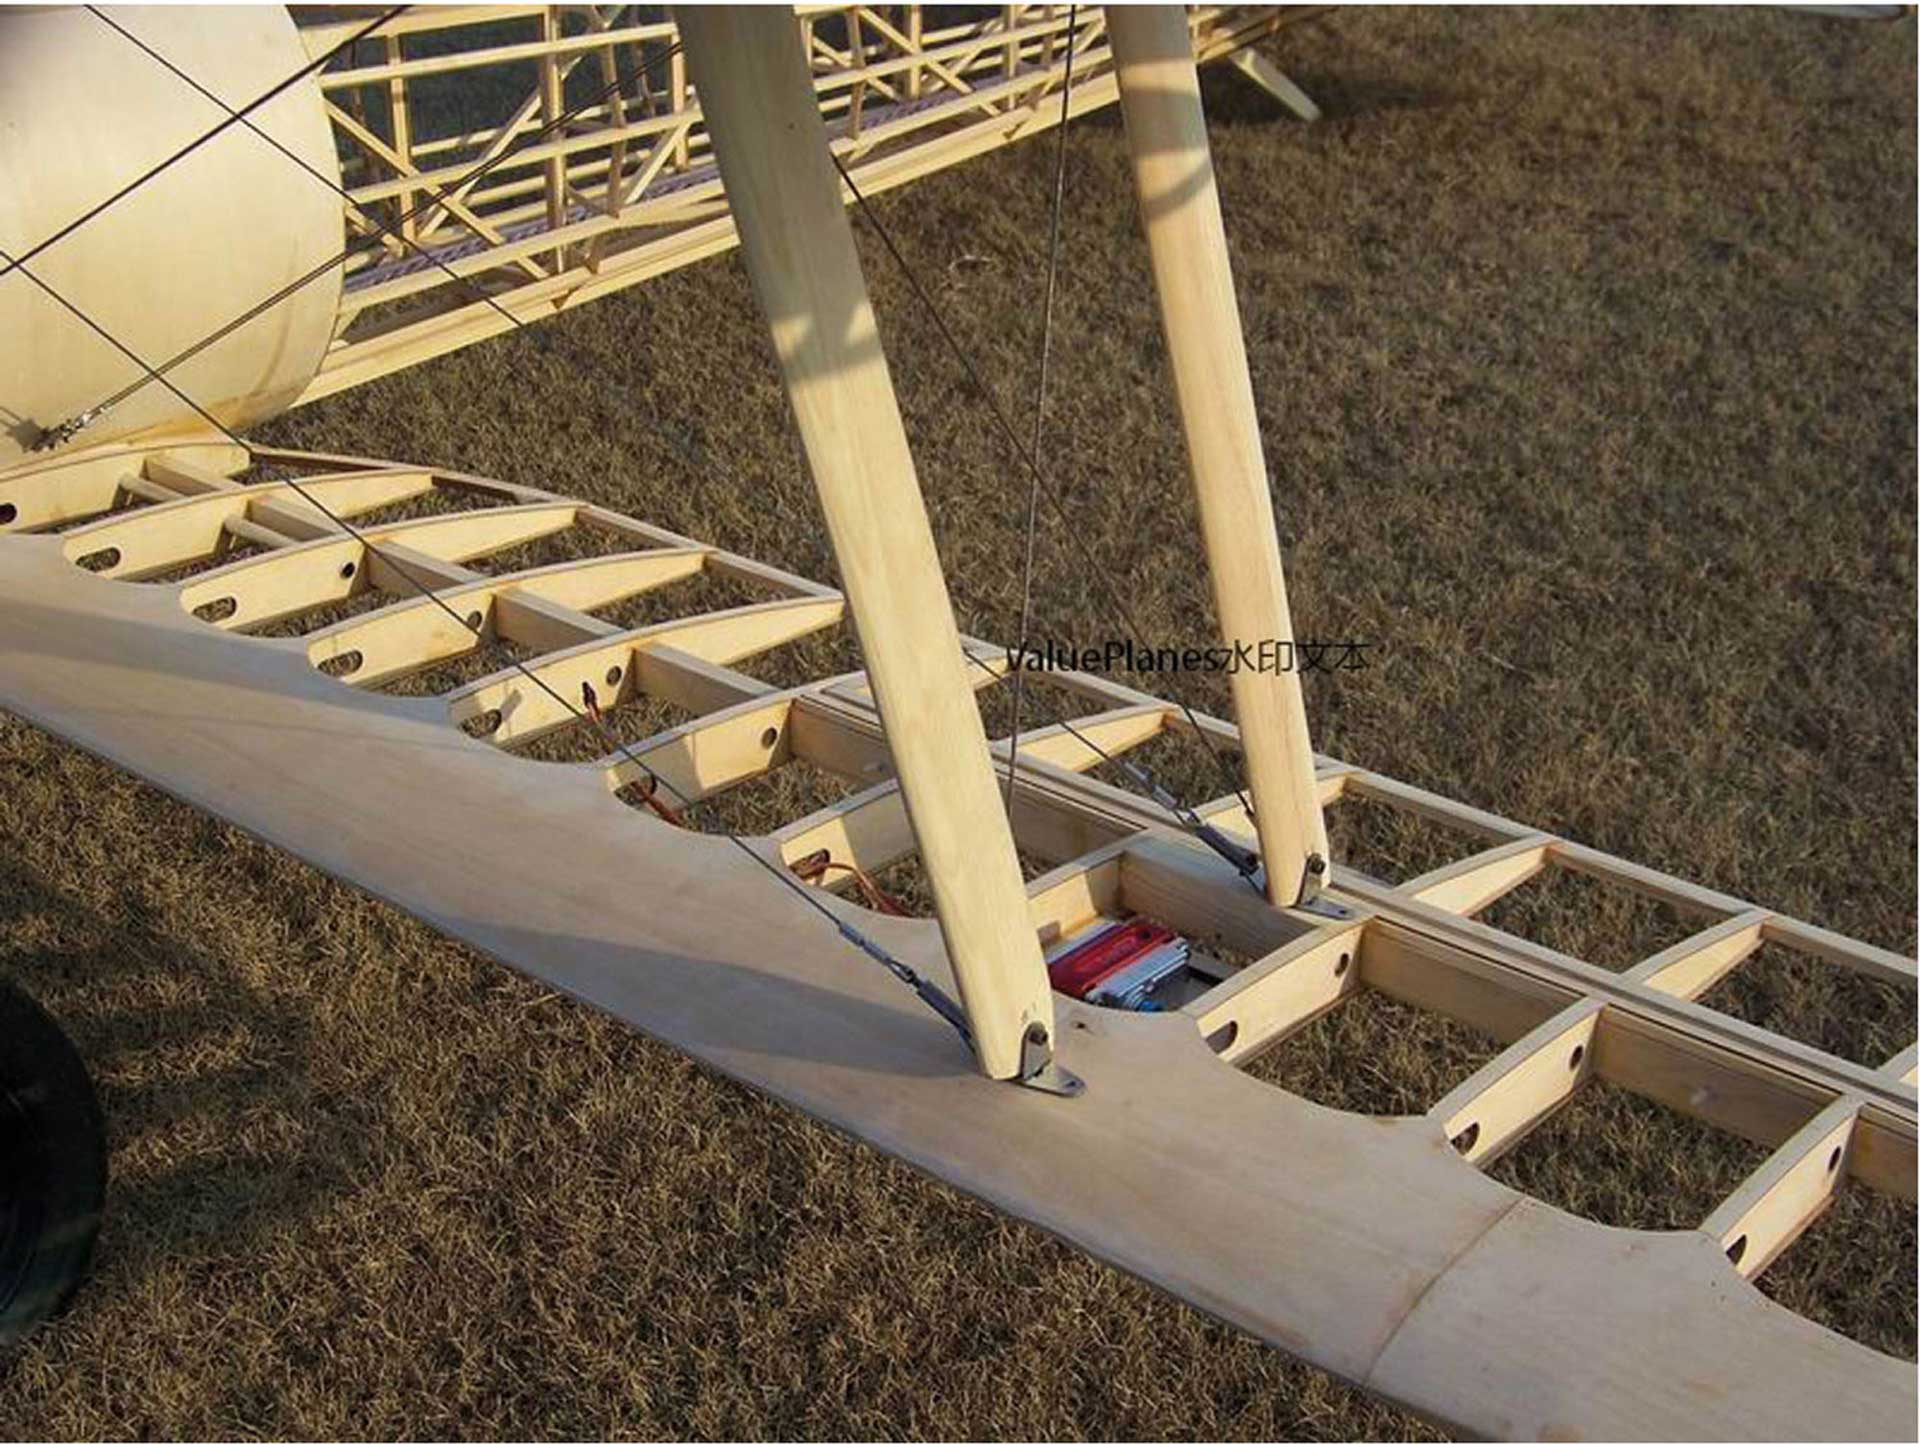 VALUEPLANES NIEUPORT 28 WOODEN KIT 1:3 2,8M WITH METAL FITTINGS AND GFK HOOD